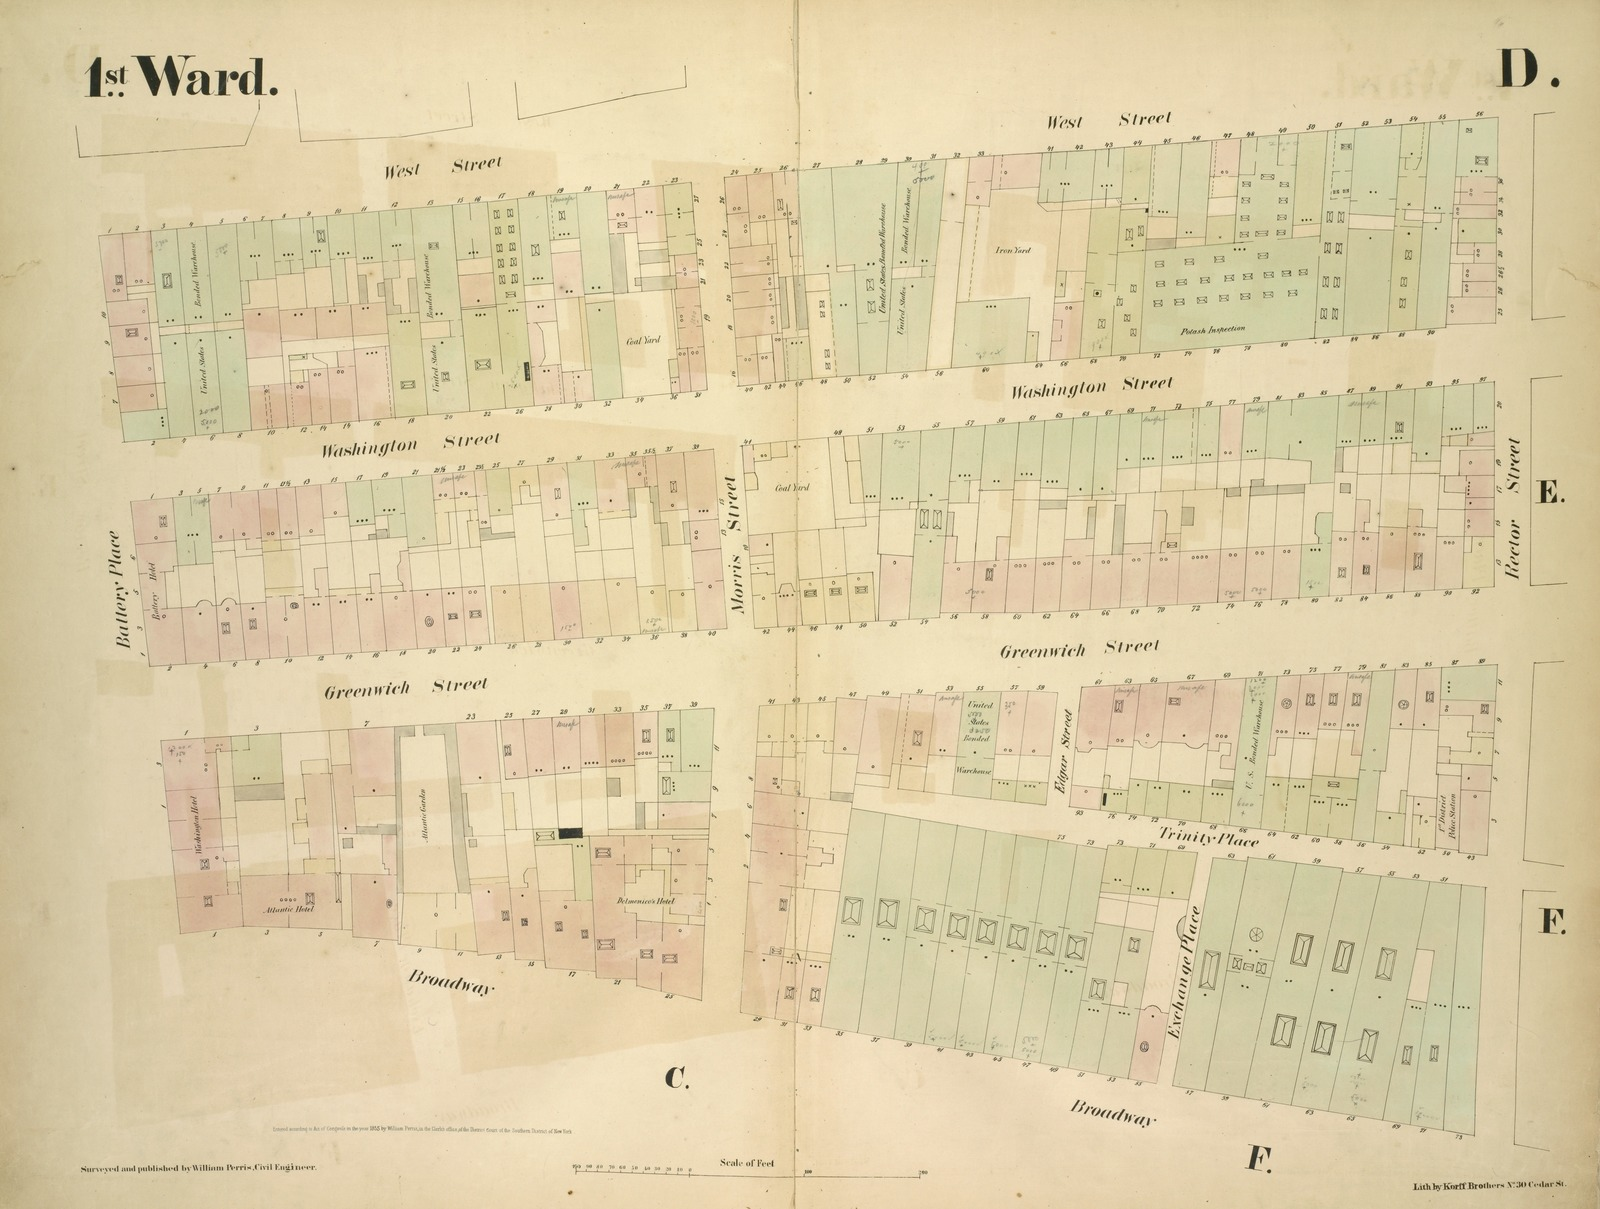 [1st Ward. Plate D: Map bounded by West Street, Rector Street, Broadway, Battery Place; Including Washington Street, Greenwich Street, Trinity Place, Morris Street, Edgar Street, Exchange Place]